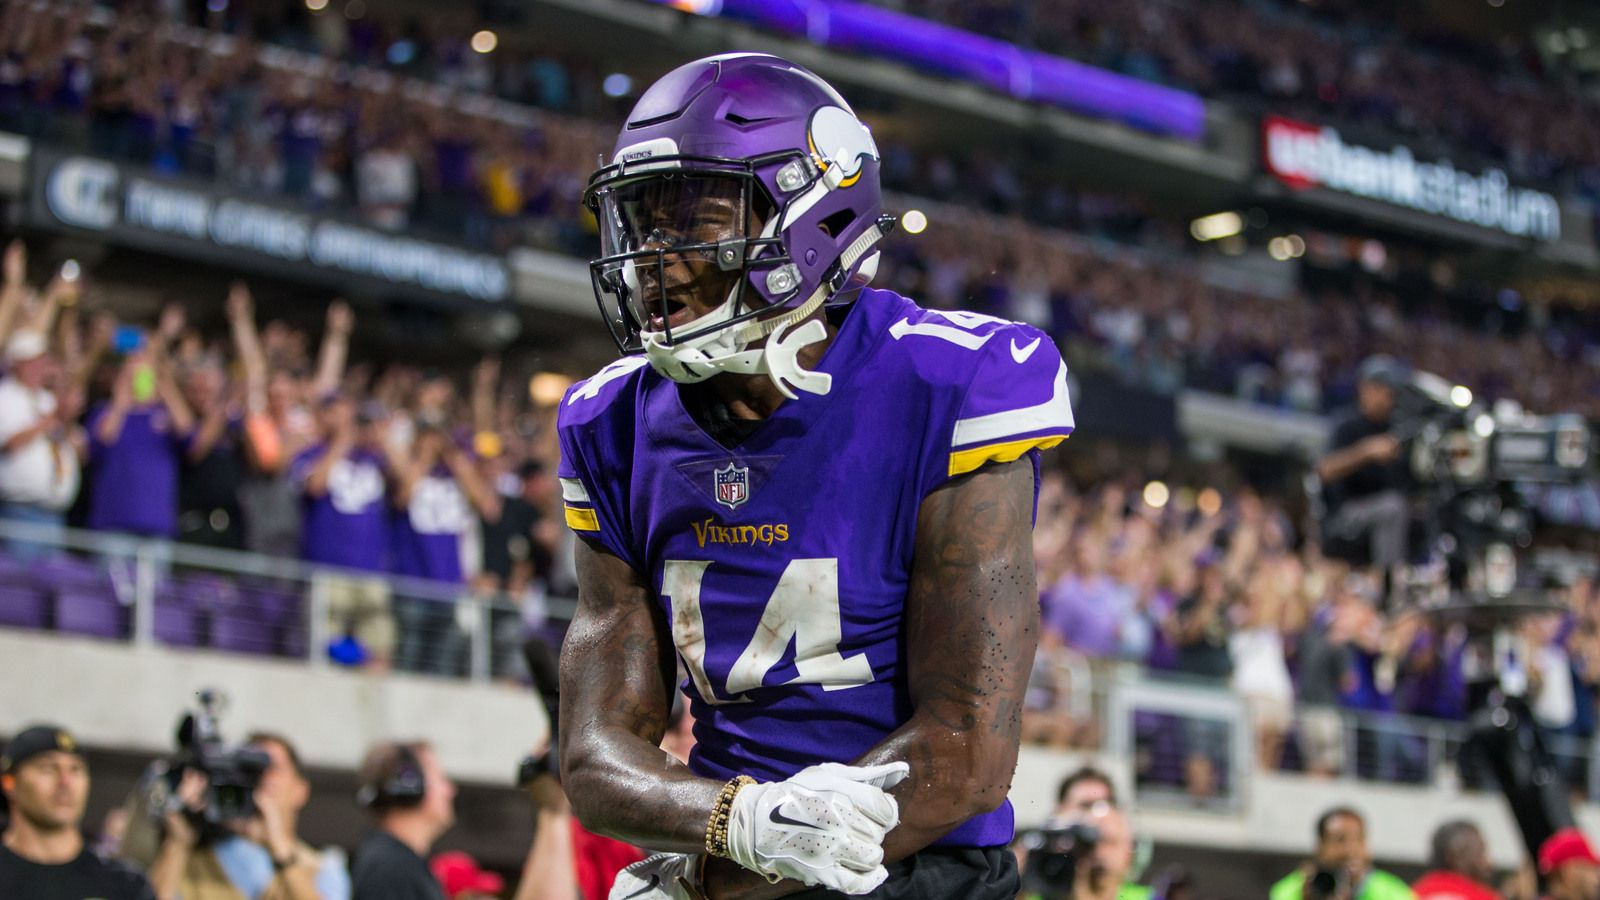 WATCH: Stefon Diggs punts ball into stands after contested TD ...